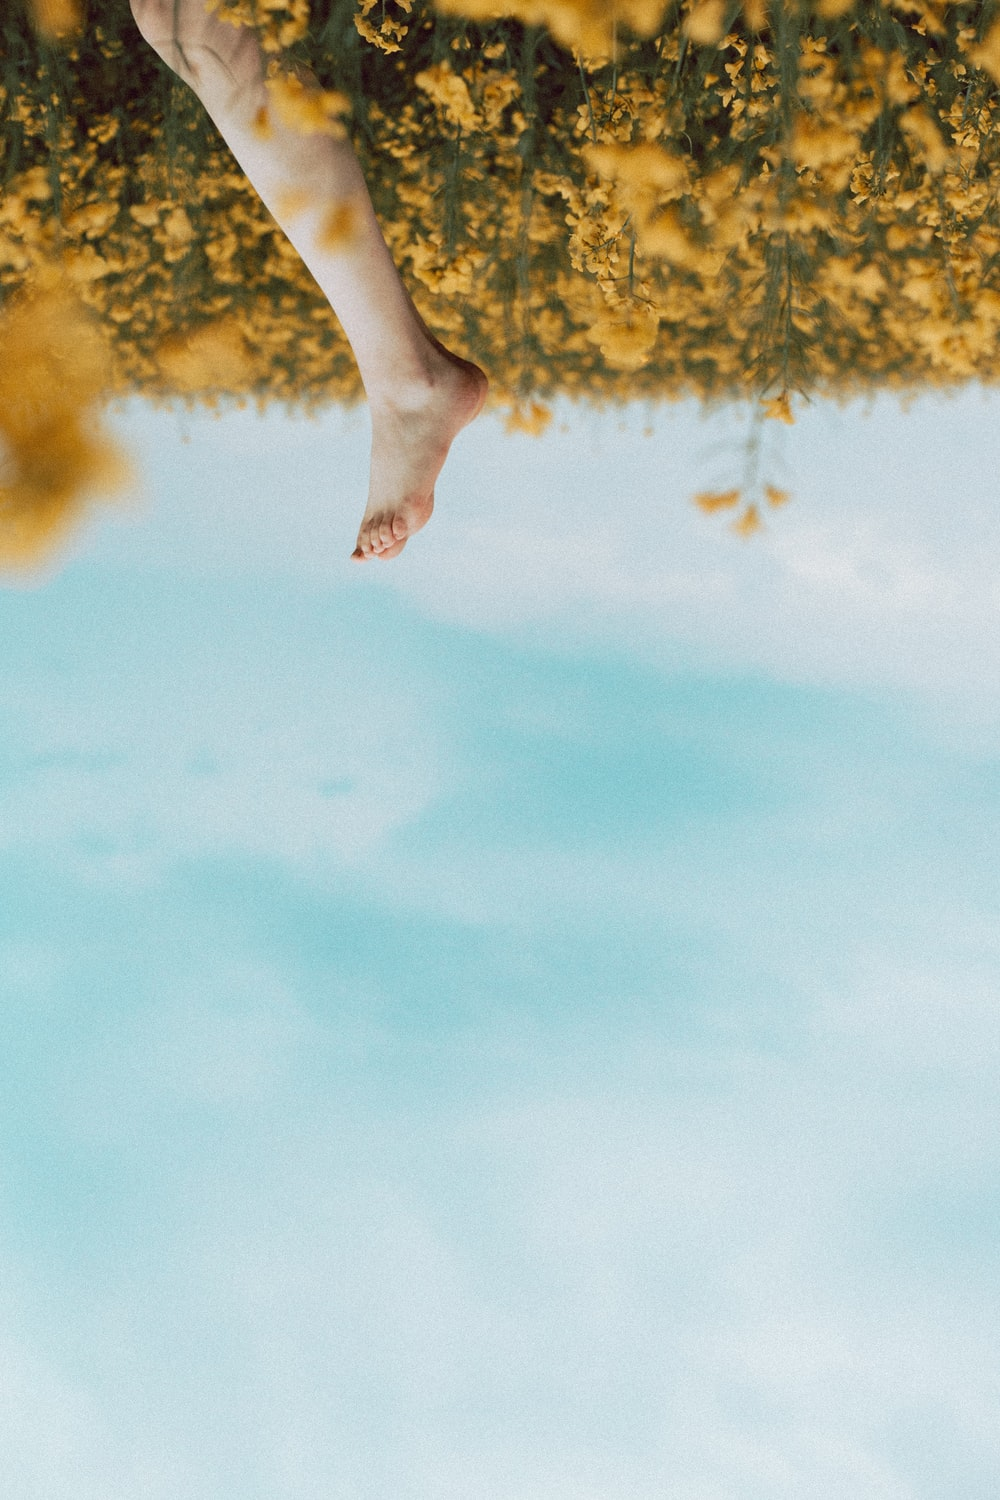 person's foot in a yellow flower field during daytime